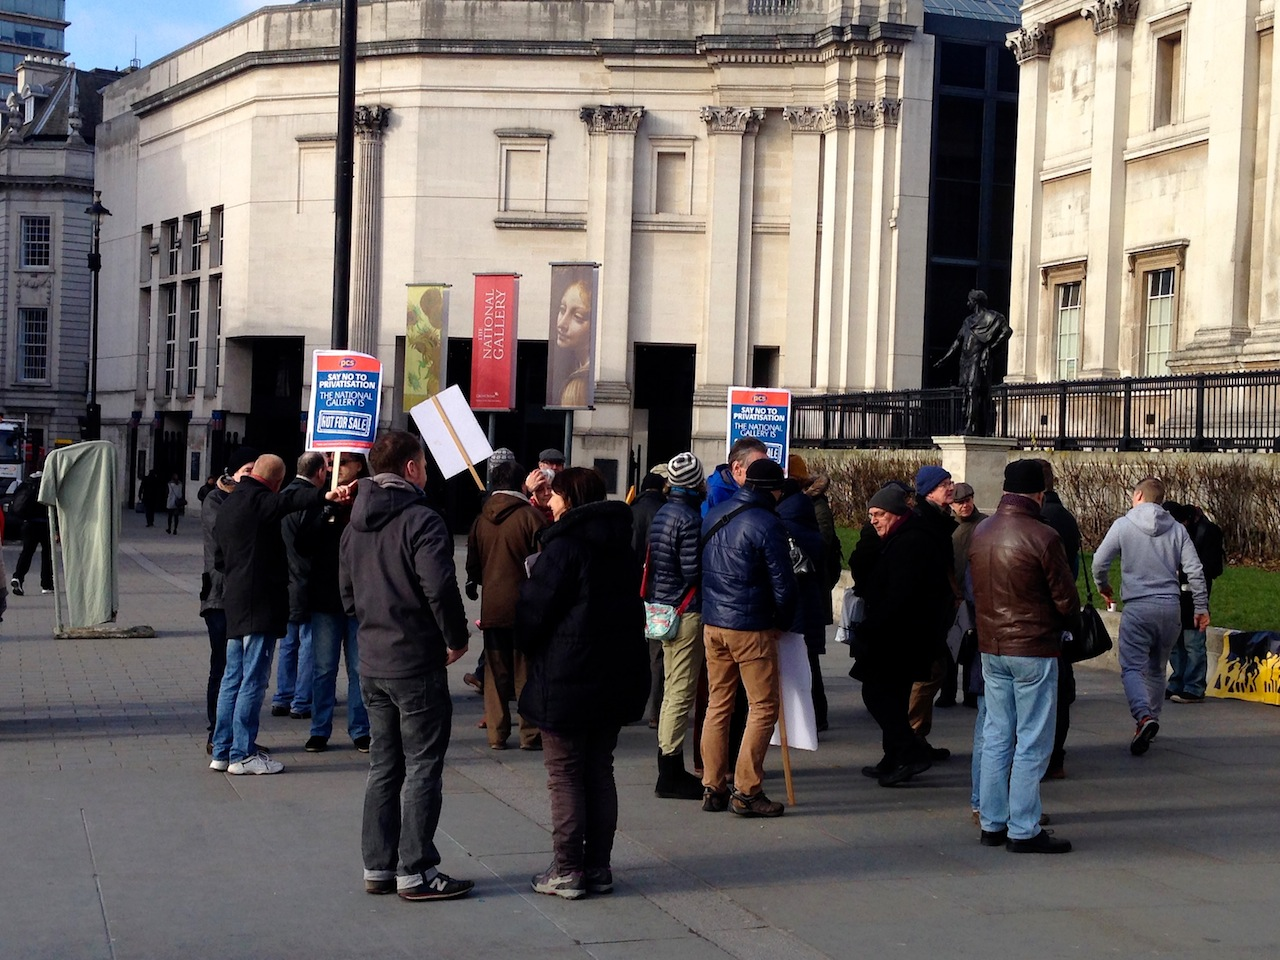 Picketers outside the National Gallery